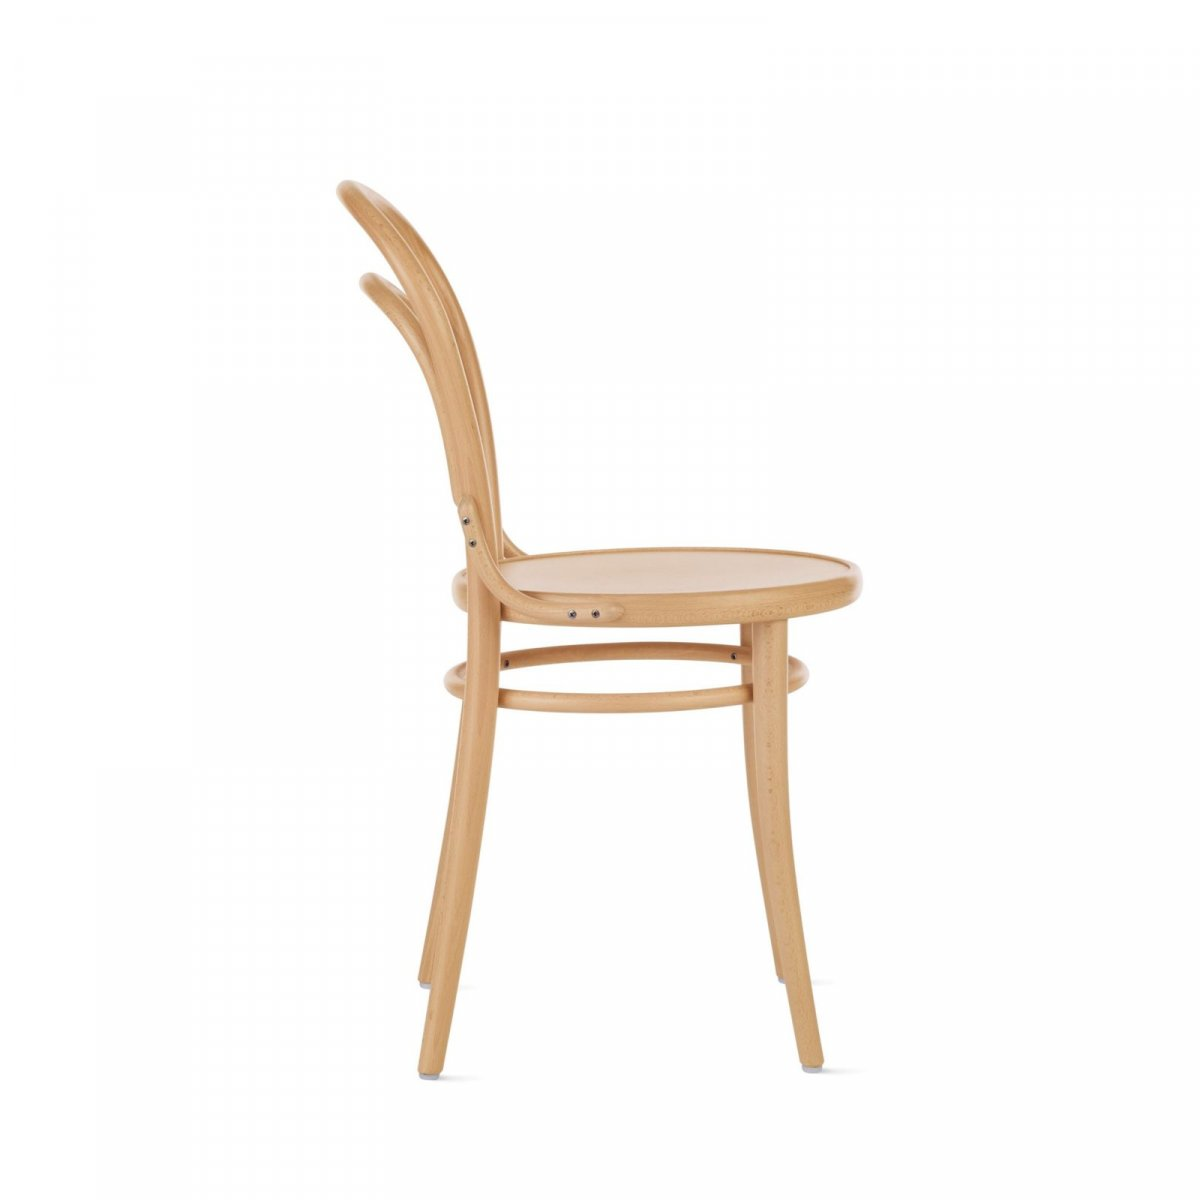 Era (214) chair, natural, side view.